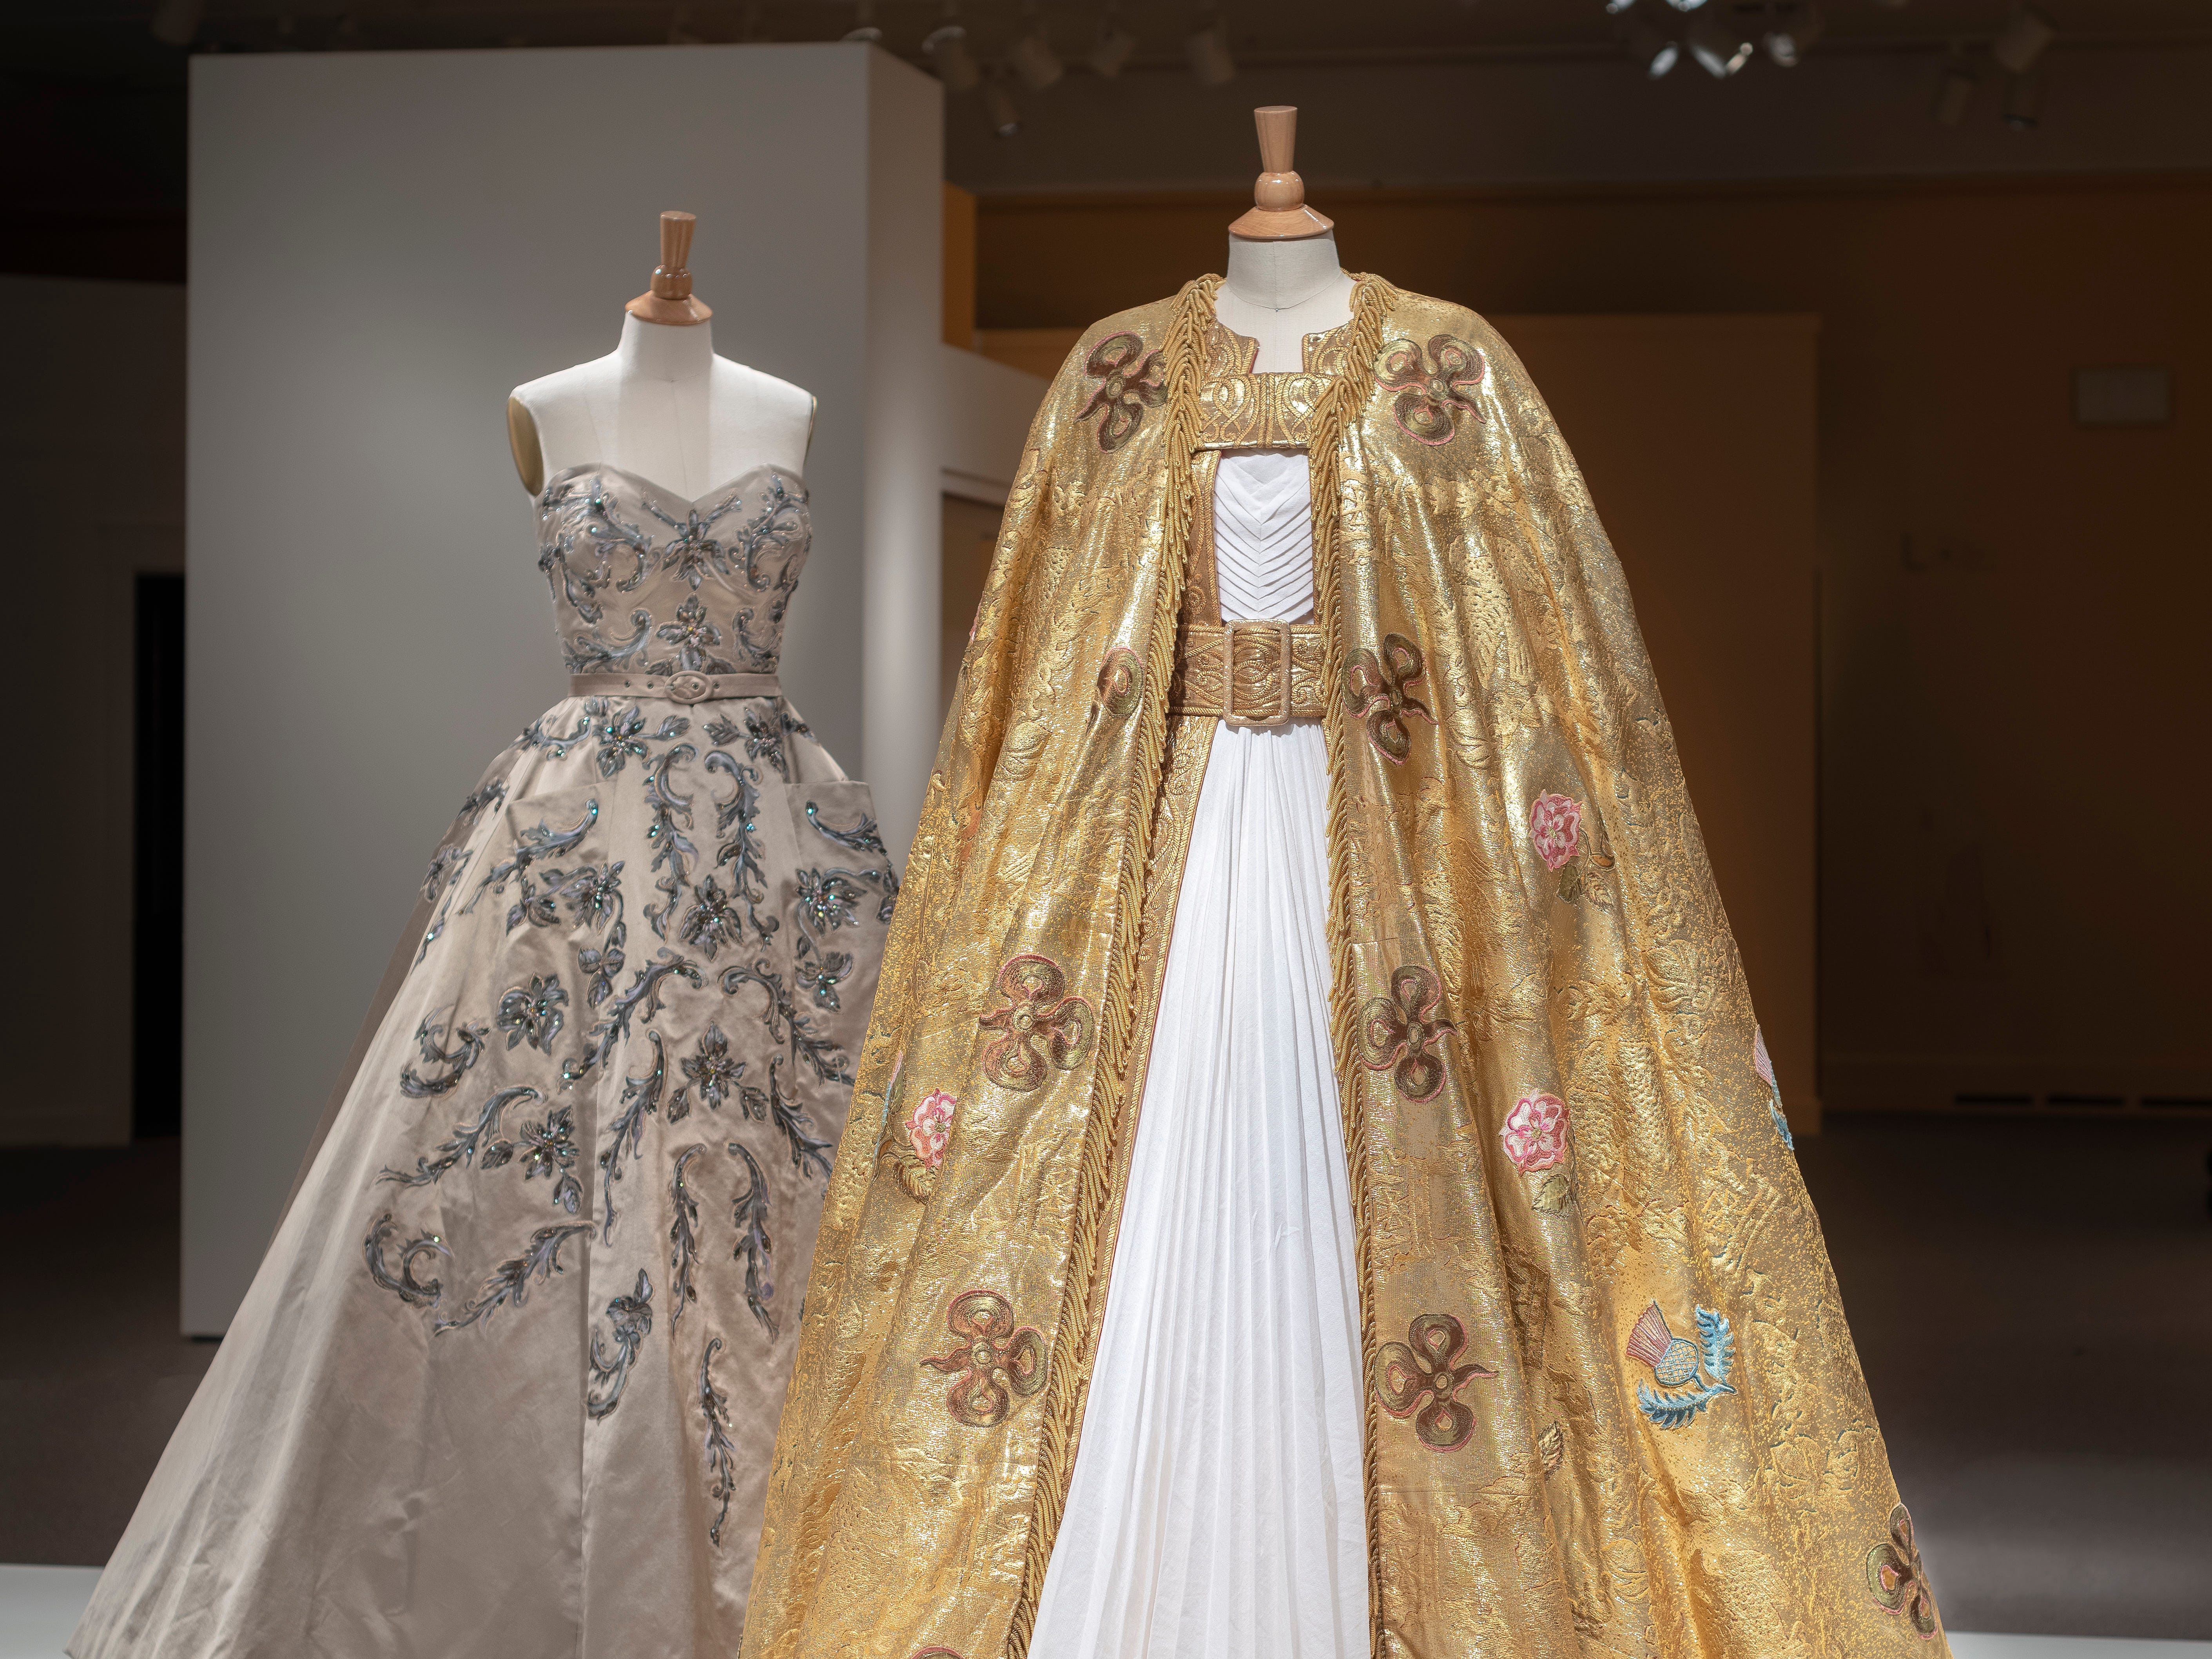 """The show """"The Crown,"""" which dramatizes Queen Elizabeth II's early reign, features carefully fabricated replicas of the dresses, uniforms, crowns and tiaras that are associated with the family."""